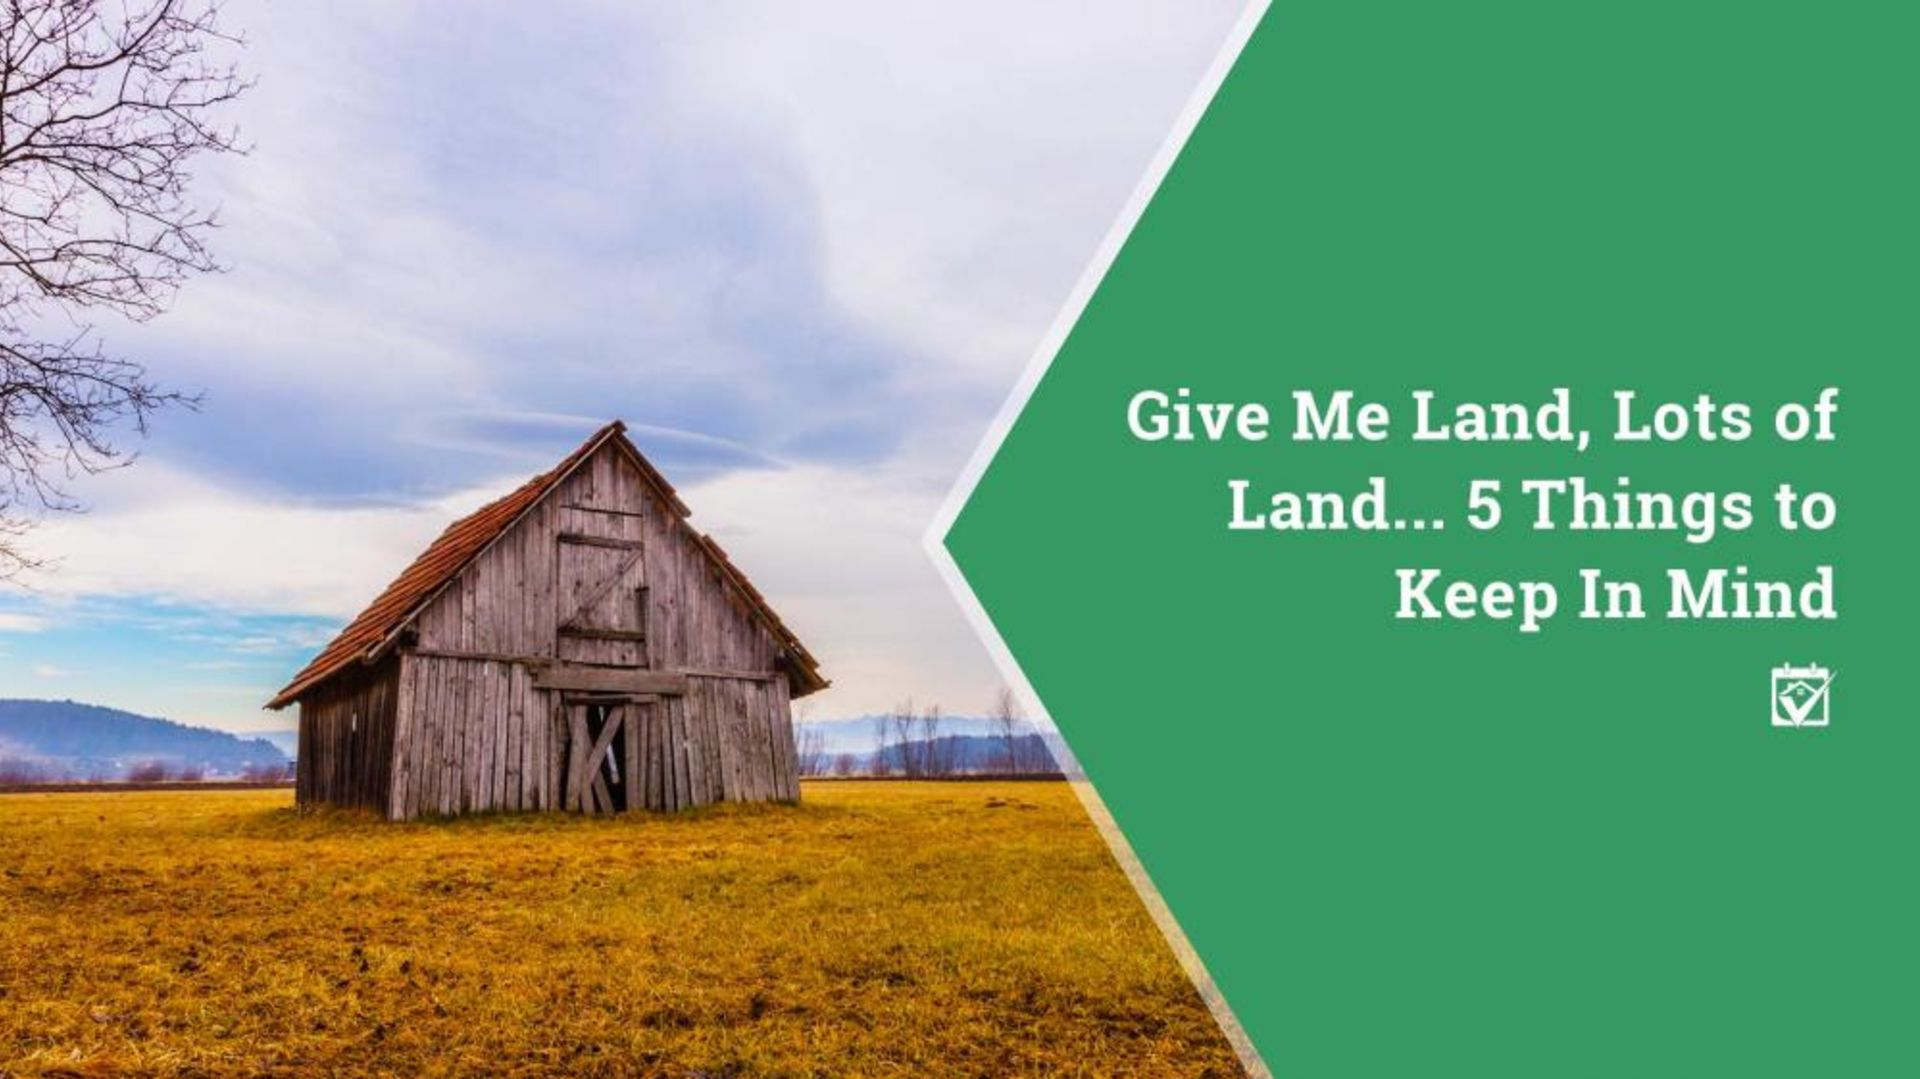 Give me Land, Lots of Land